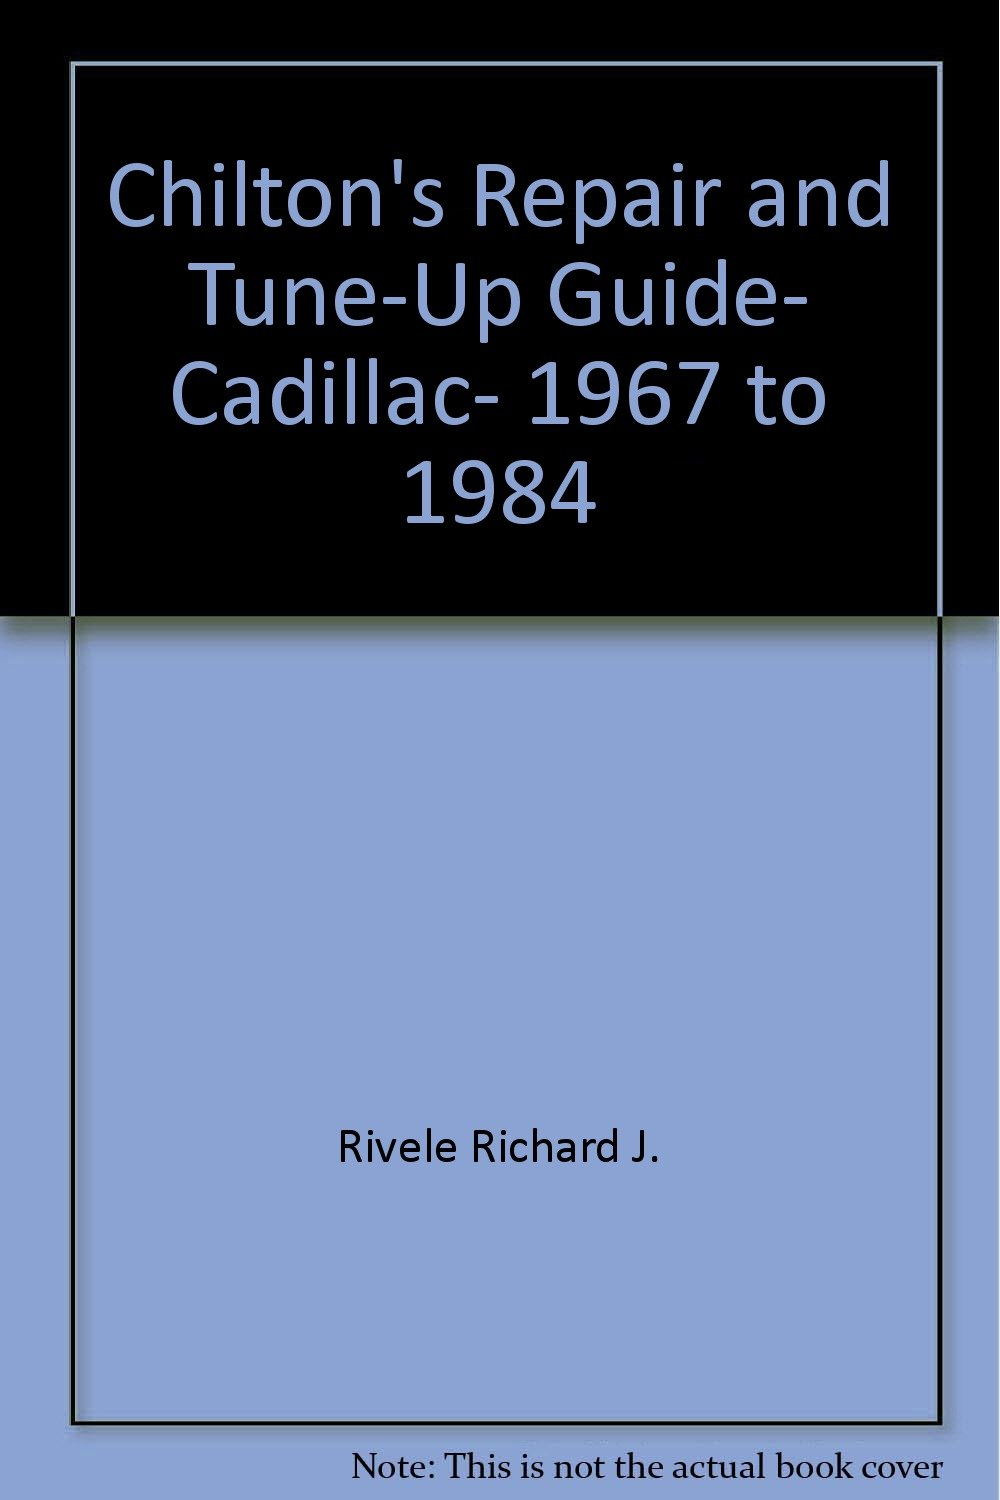 Cadillac 1967 - 1984: Repair and Tune-Up Guide: Chilton Book Company,  Chilton Automotives Editorial, Richard J. Rivele: 9780801974625:  Amazon.com: Books